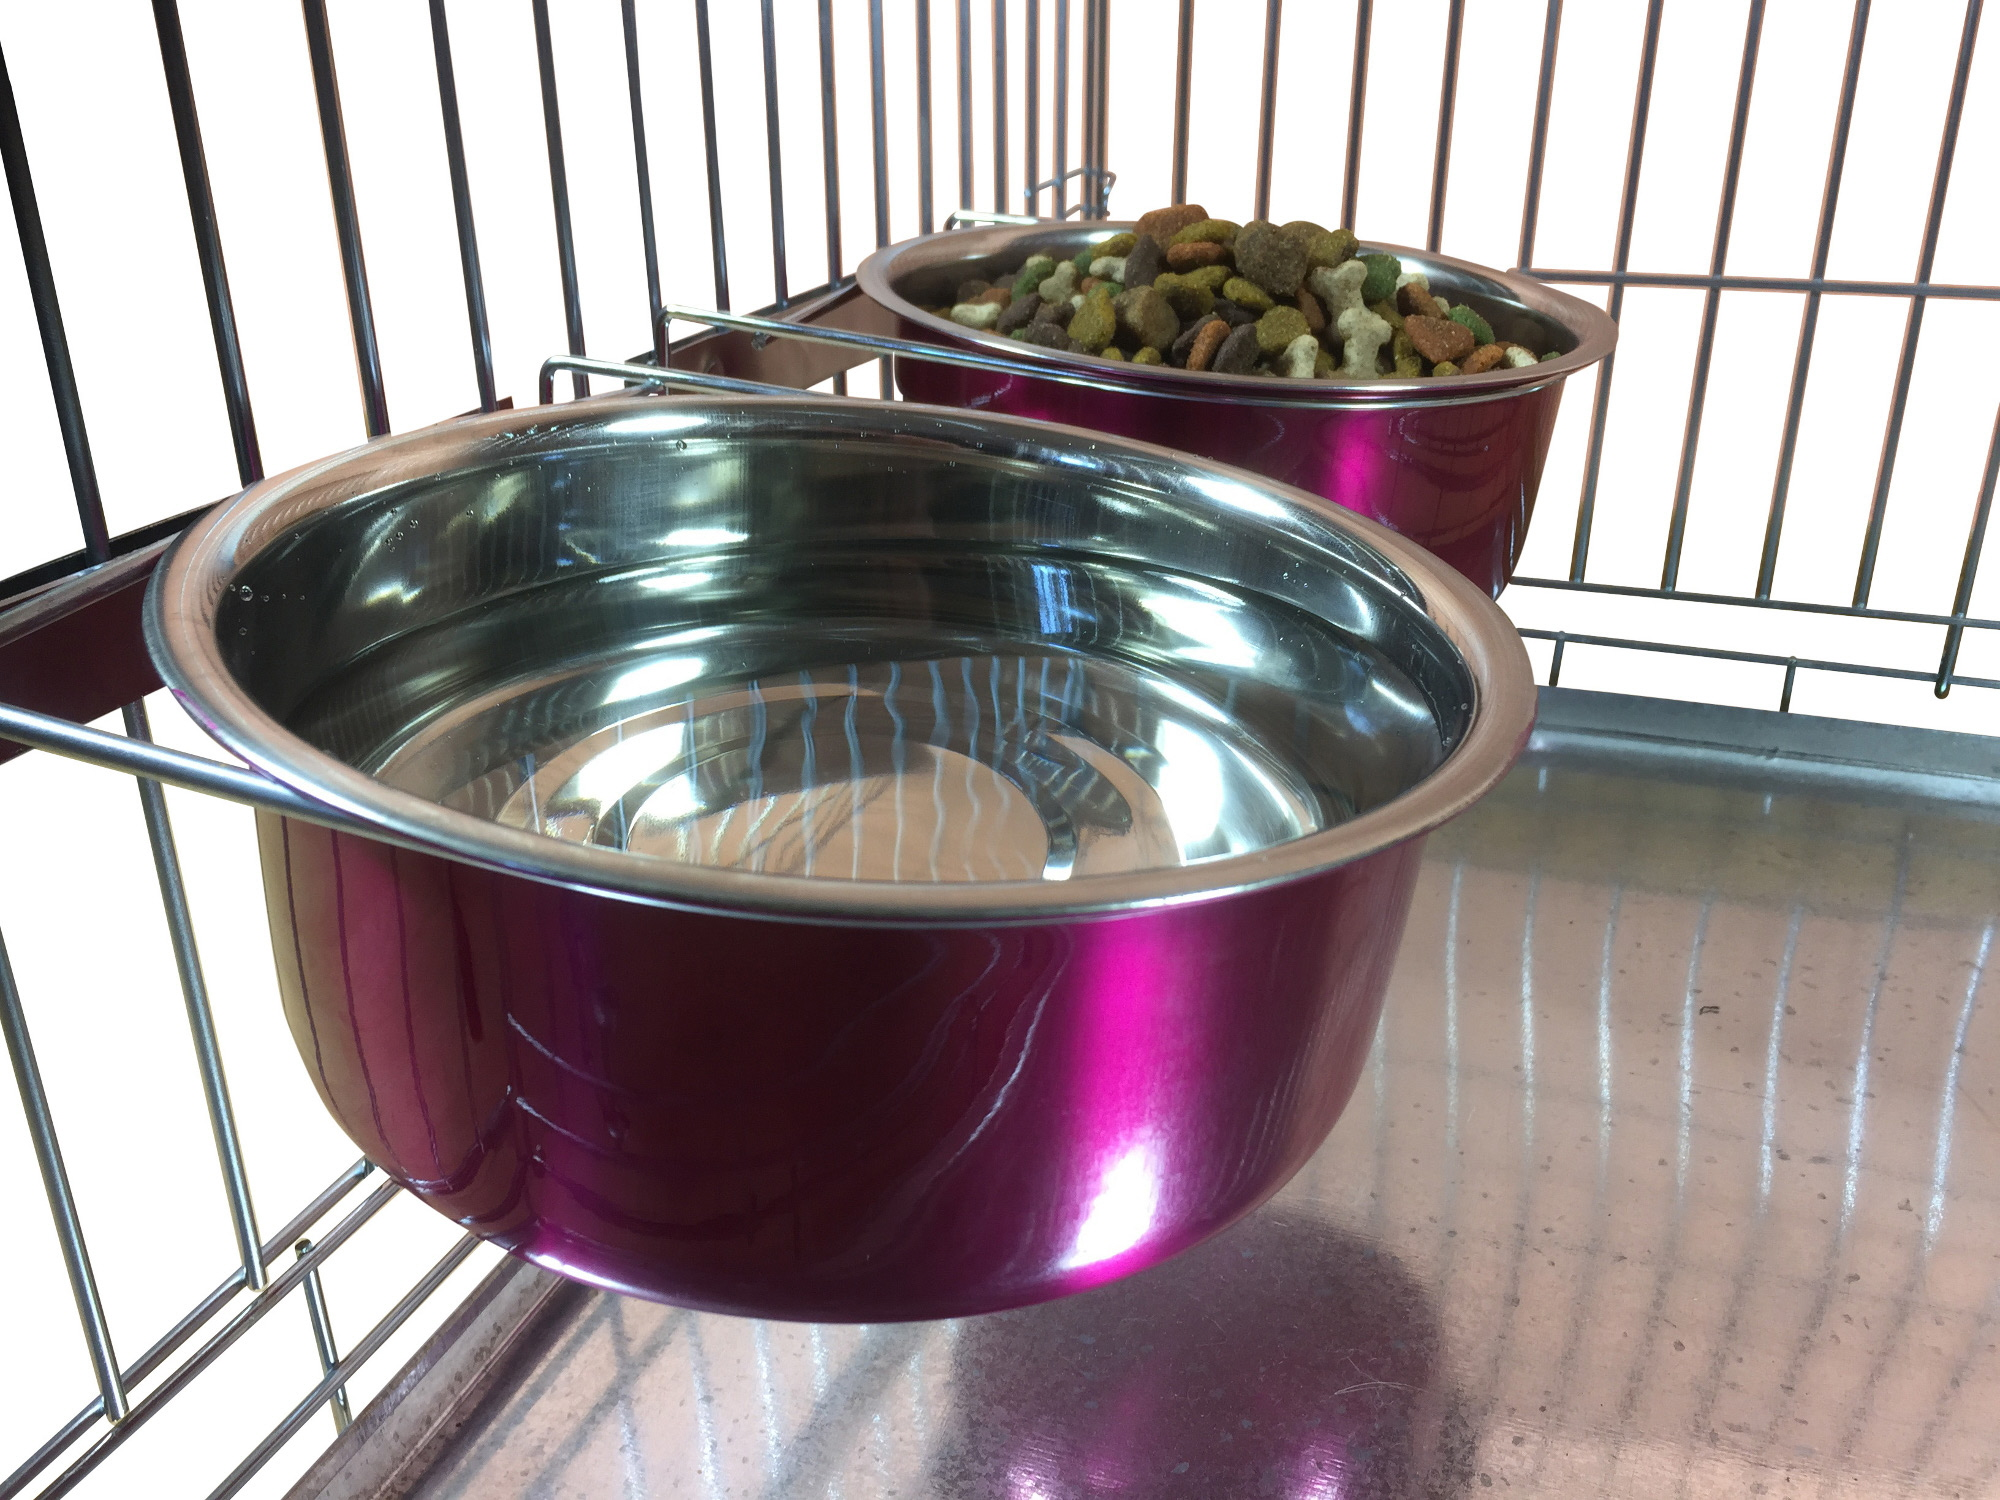 elliebo pair of dog bowls for cages crates or pens  blue  - elliebopairofdogbowlsforcages